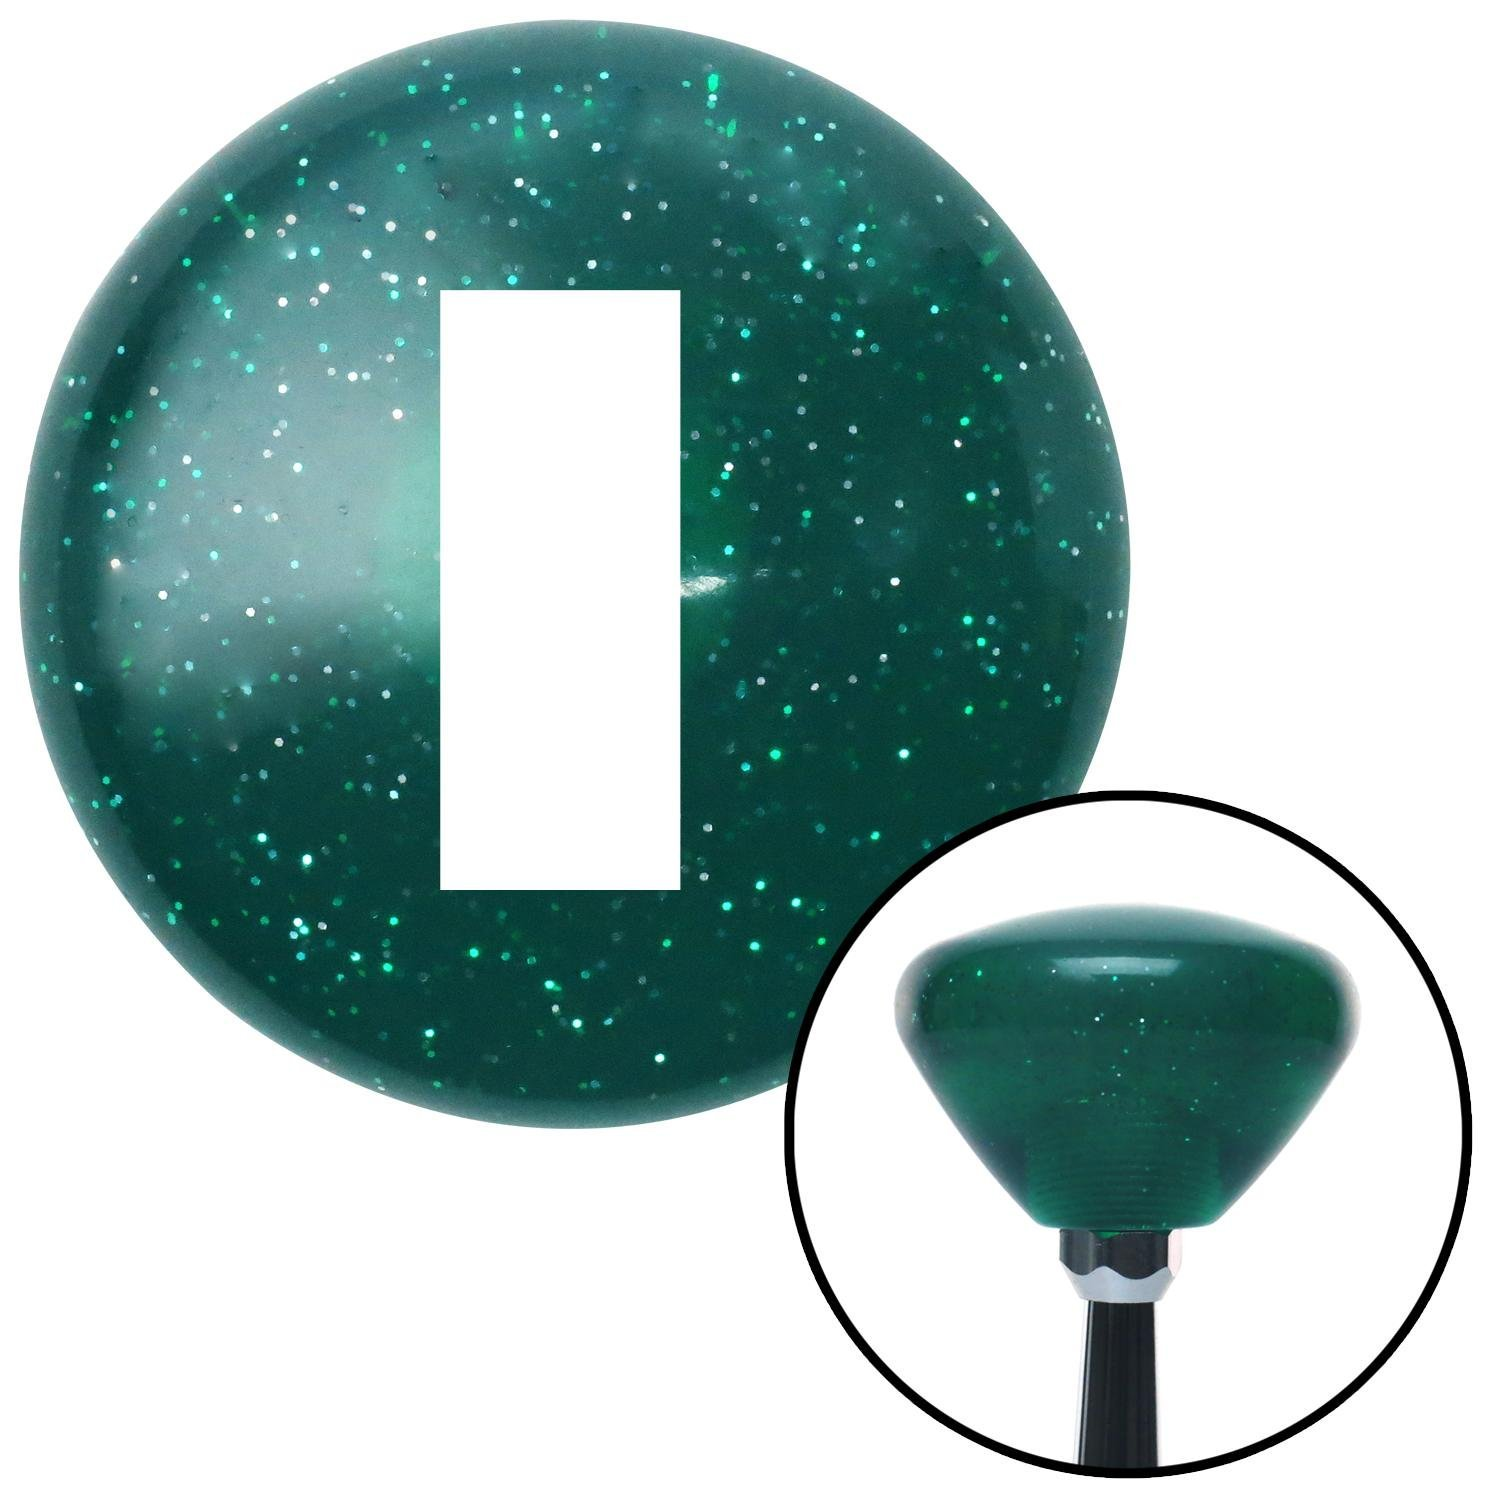 American Shifter 267350 Green Flame Metal Flake Shift Knob with M16 x 1.5 Insert White JDM Hand Bomb